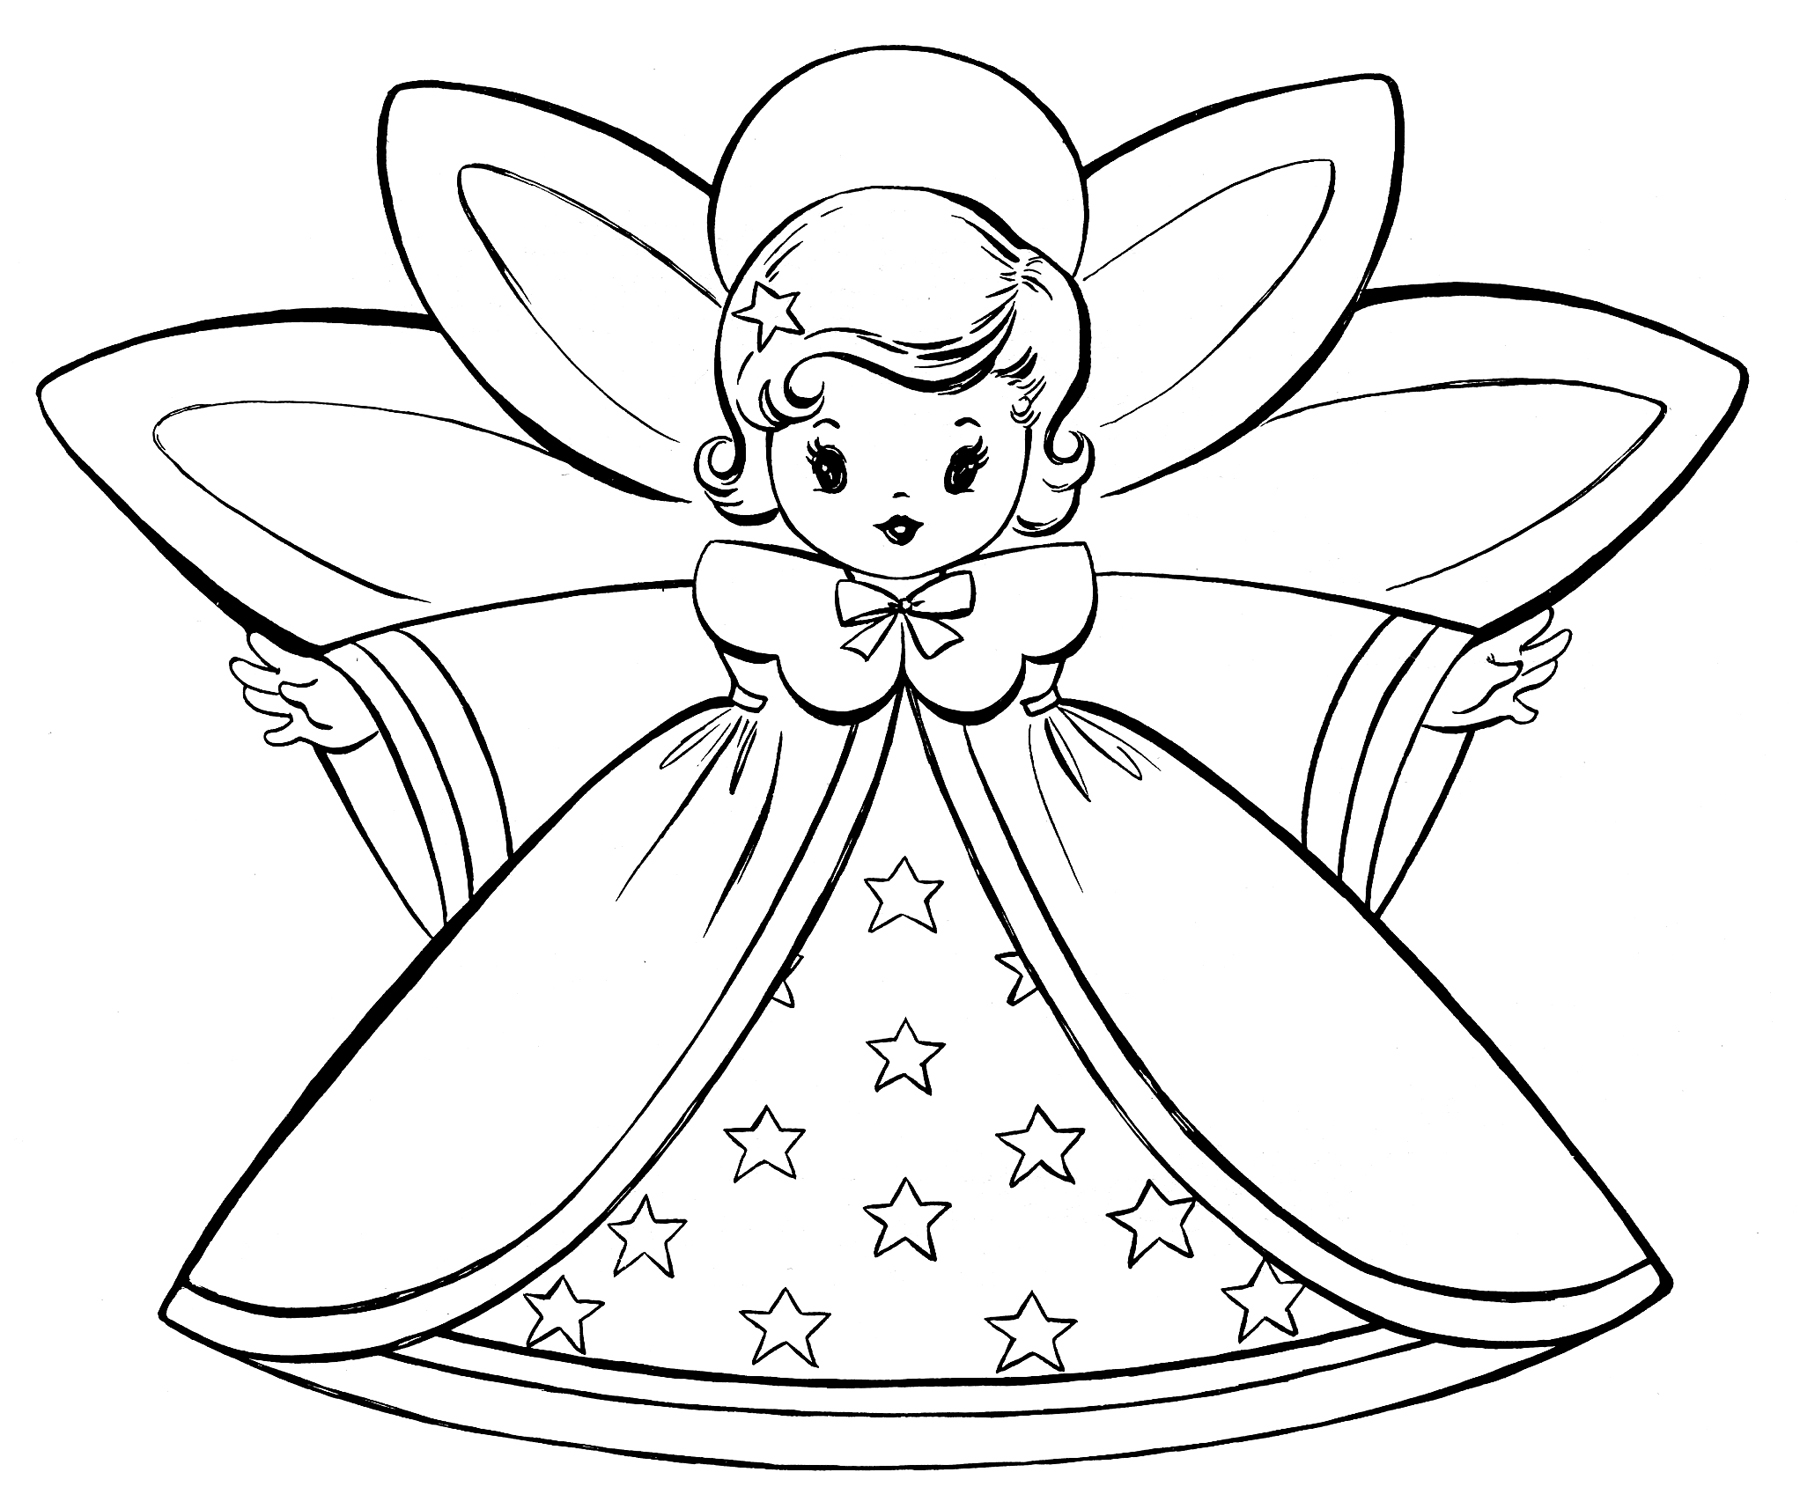 Coloring page x wing - Free Christmas Coloring Pages